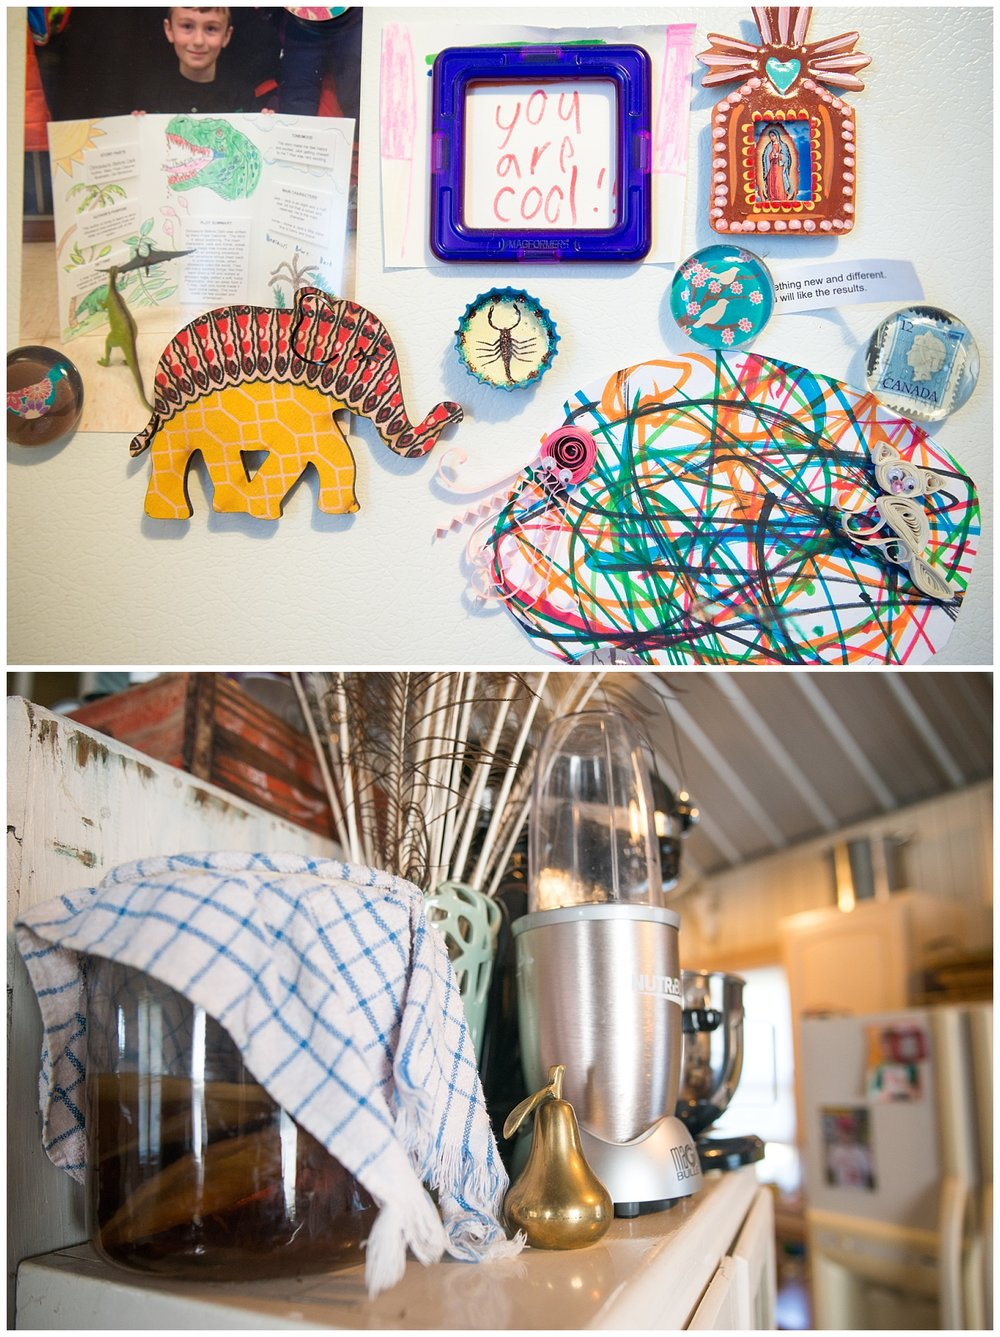 Kitchen goodies - I found the Canada stamp magnet at an awesome shop in Minneapolis called Shop Junket.  Anytime I find a Canada anything I have to give it to her and Trevor.  They've got to hate me by now.  And that jar of something on the left?  That's her kombucha brewing.